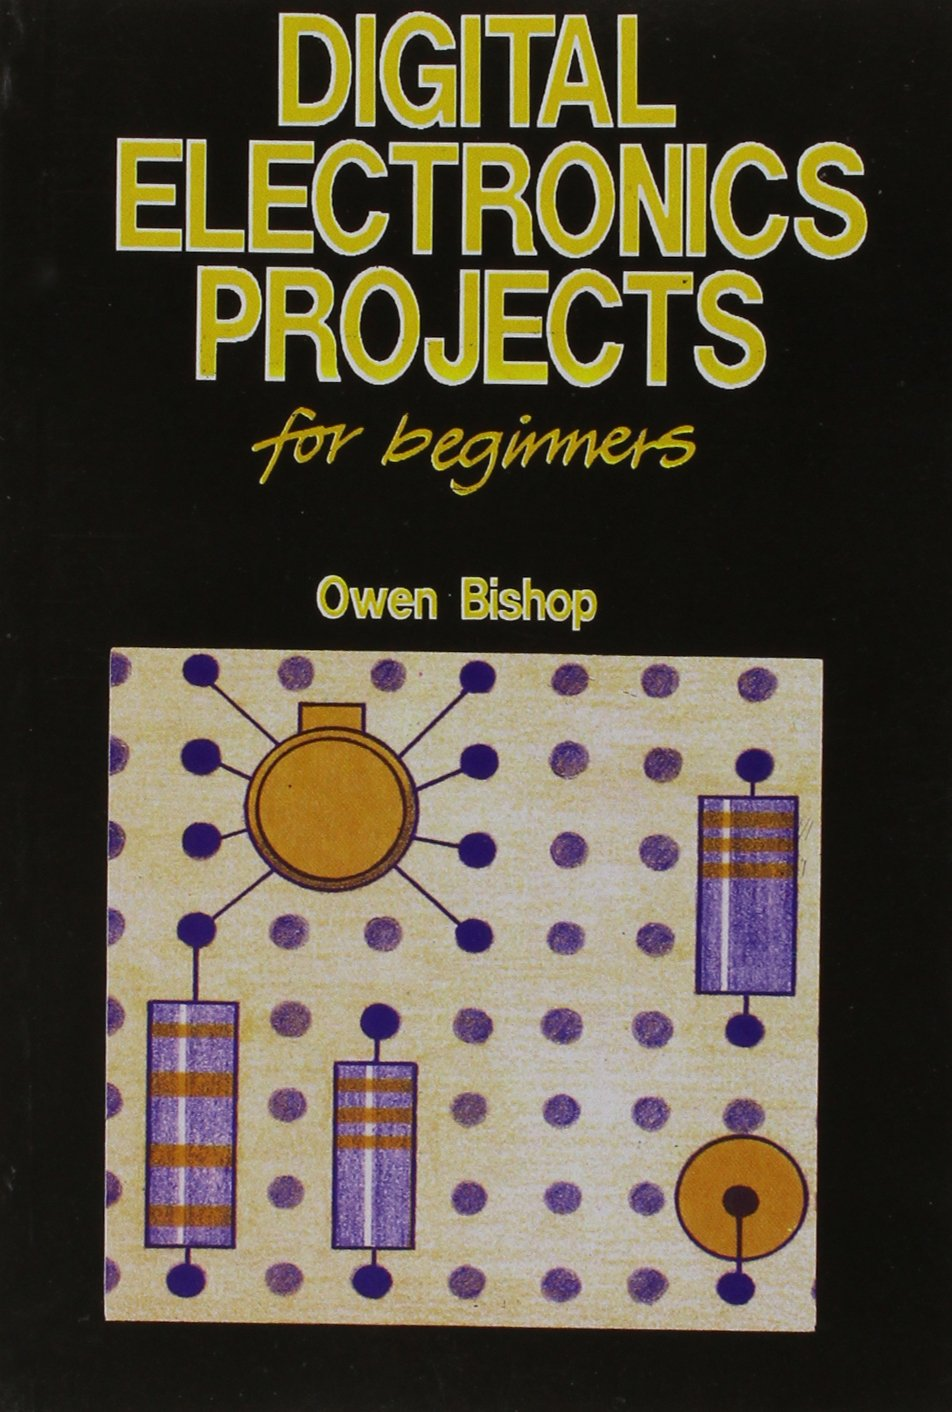 Digital Electronics Projects For Beginners: Amazon.co.uk: Bishop ...